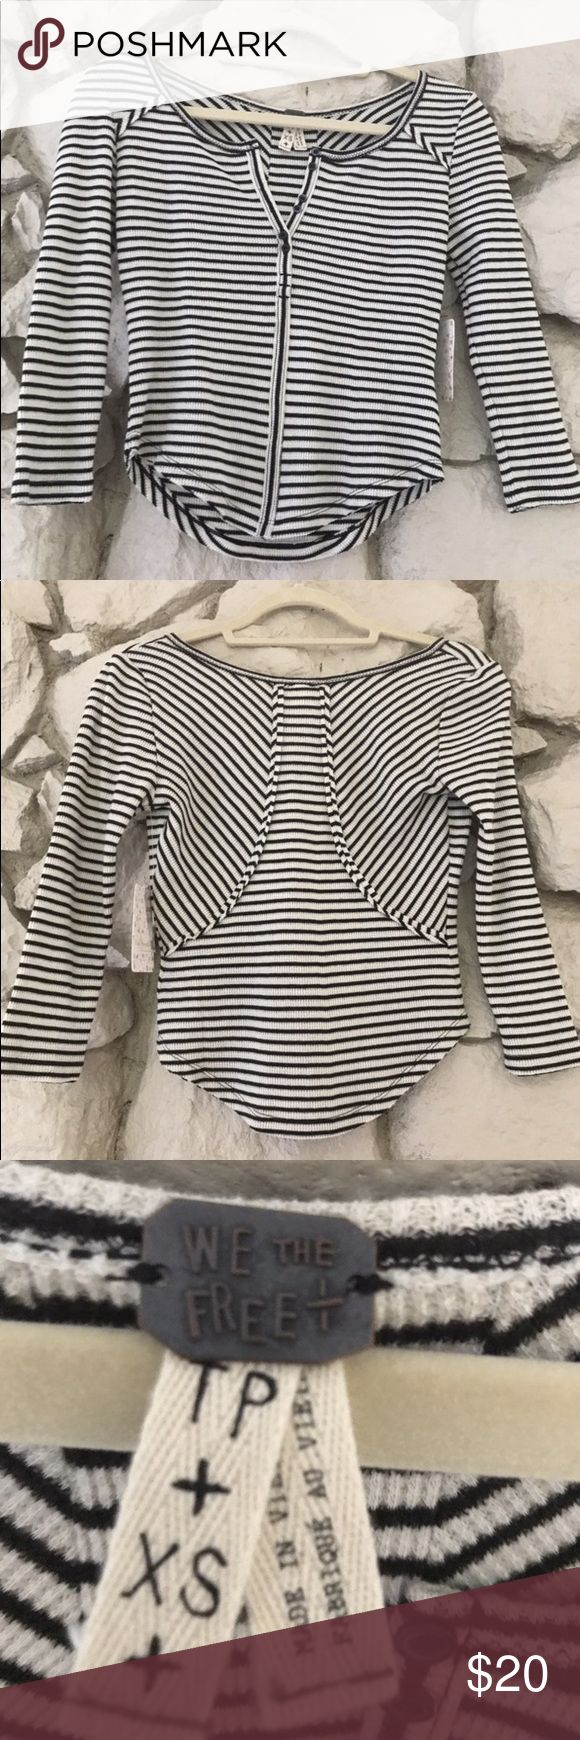 Free People 'Stars & Stripes' Thermal Tee A super cute and affordable fashion piece from Free People. This top has a split neck detail with partial front button closure. The 3/4 length sleeves make it easy to wear and the stripes give off a stylish vibe. The fit of this tee make it super easy to pair and wear! Brand new with tags! Originally purchased from Nordstrom Rack and sold out in all colors. Size: XS. Color: Ivory Combo. Free People Tops Tees - Long Sleeve